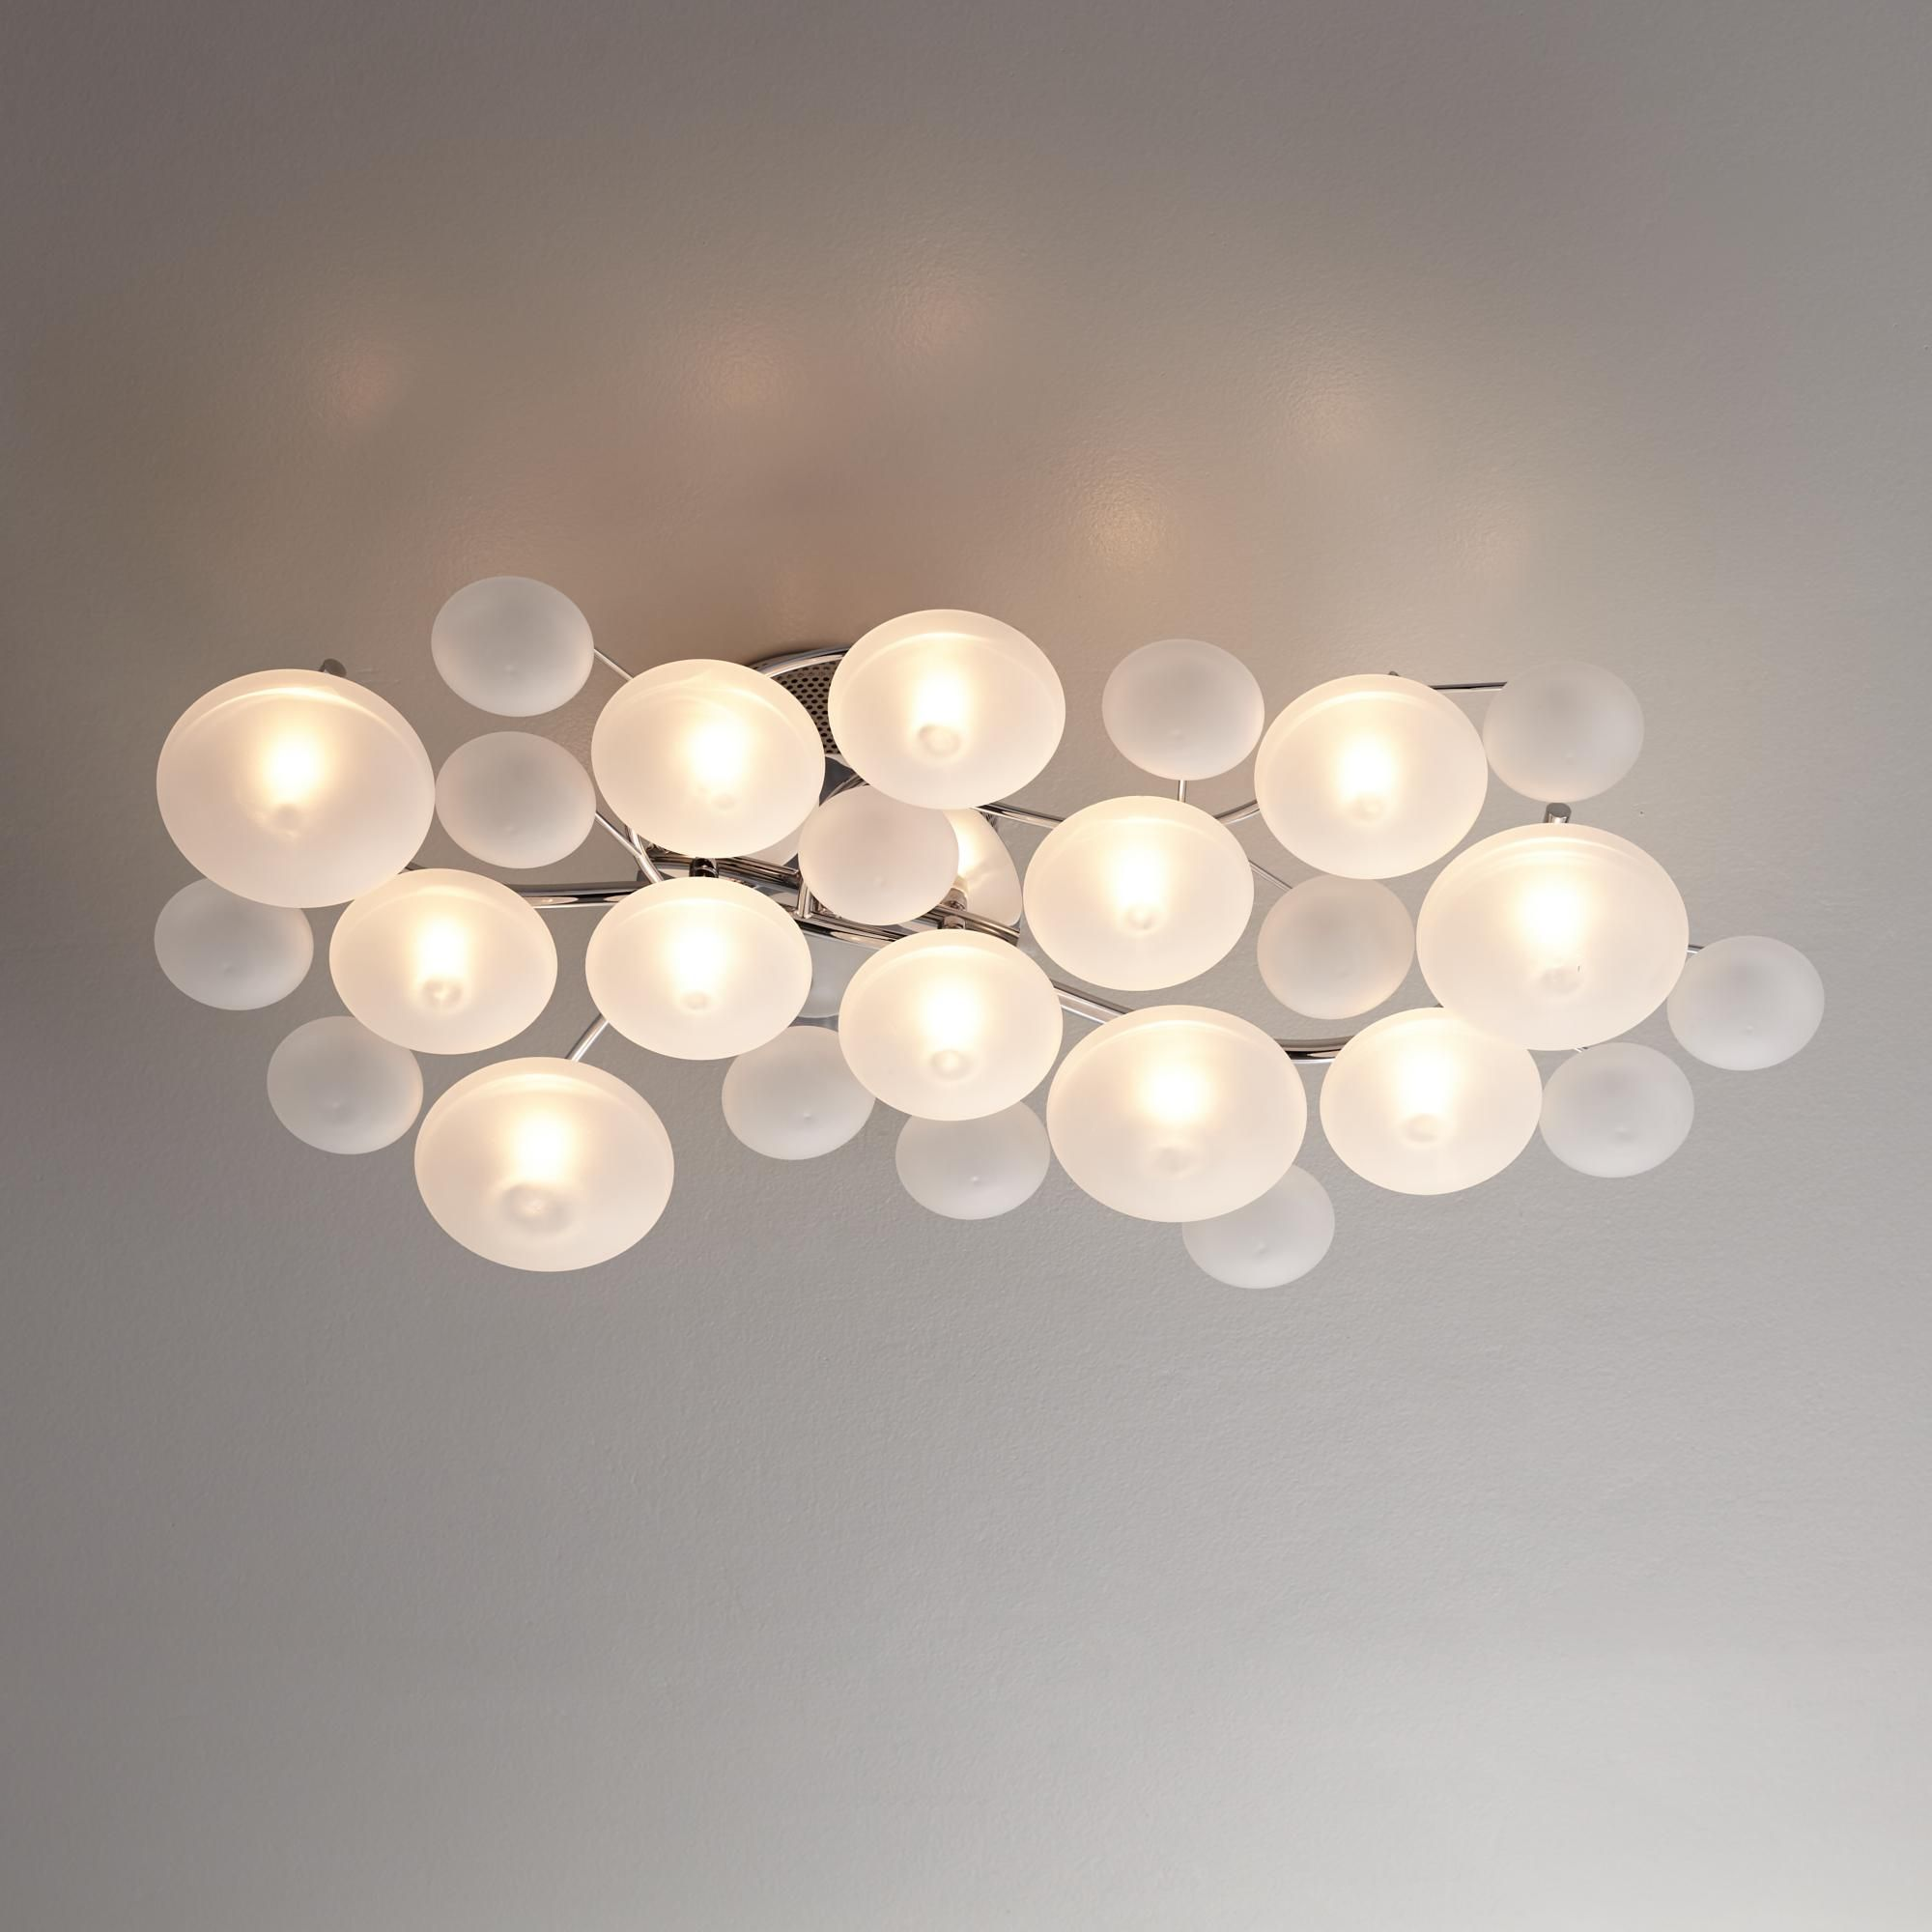 Possini euro lilypad etched 30 wide ceiling light fixture ceiling possini euro lilypad etched 30 wide ceiling light fixture arubaitofo Choice Image